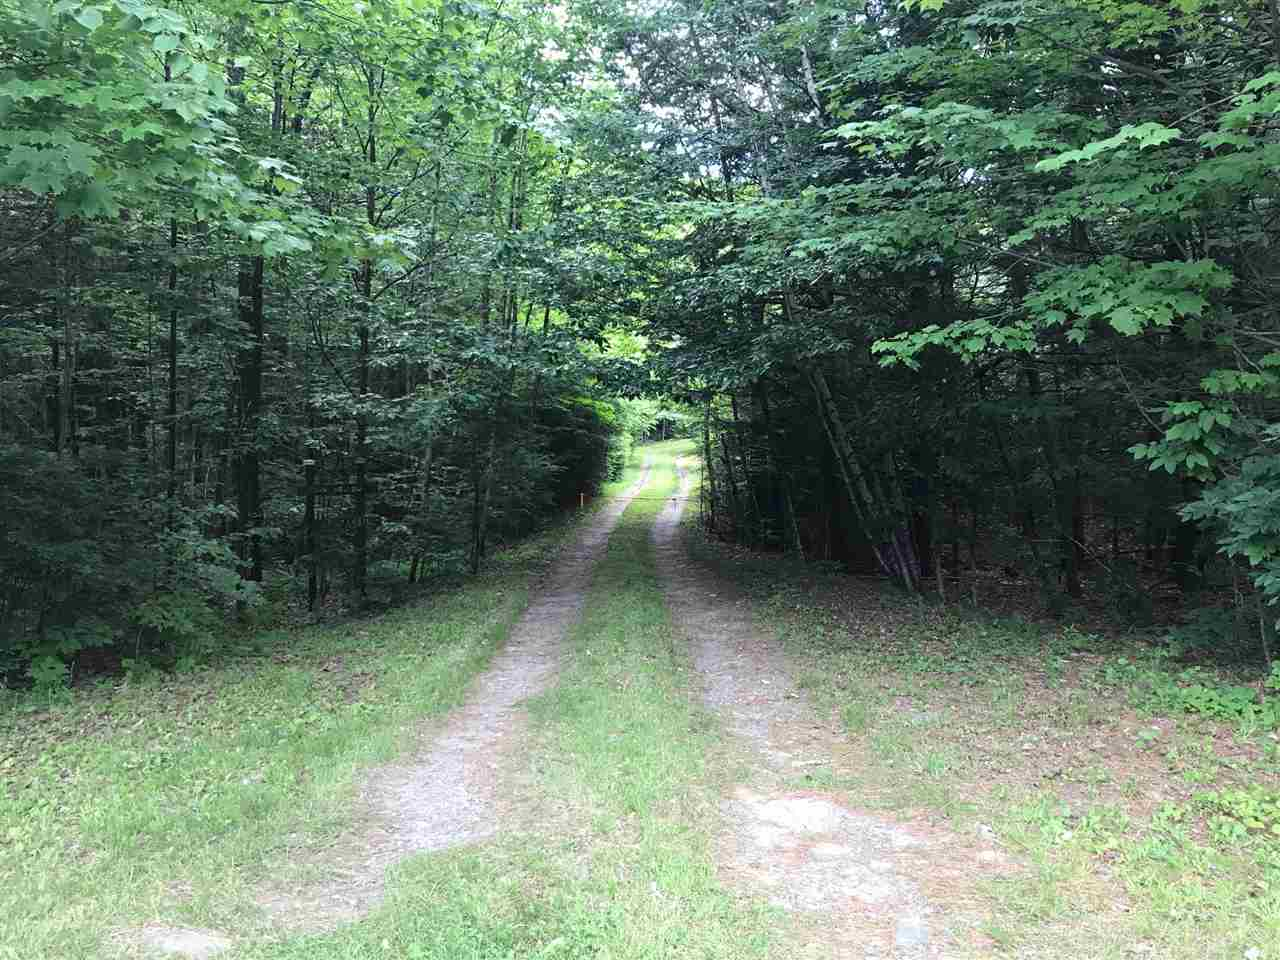 16+ acre mixed-use parcel of land ideal for...